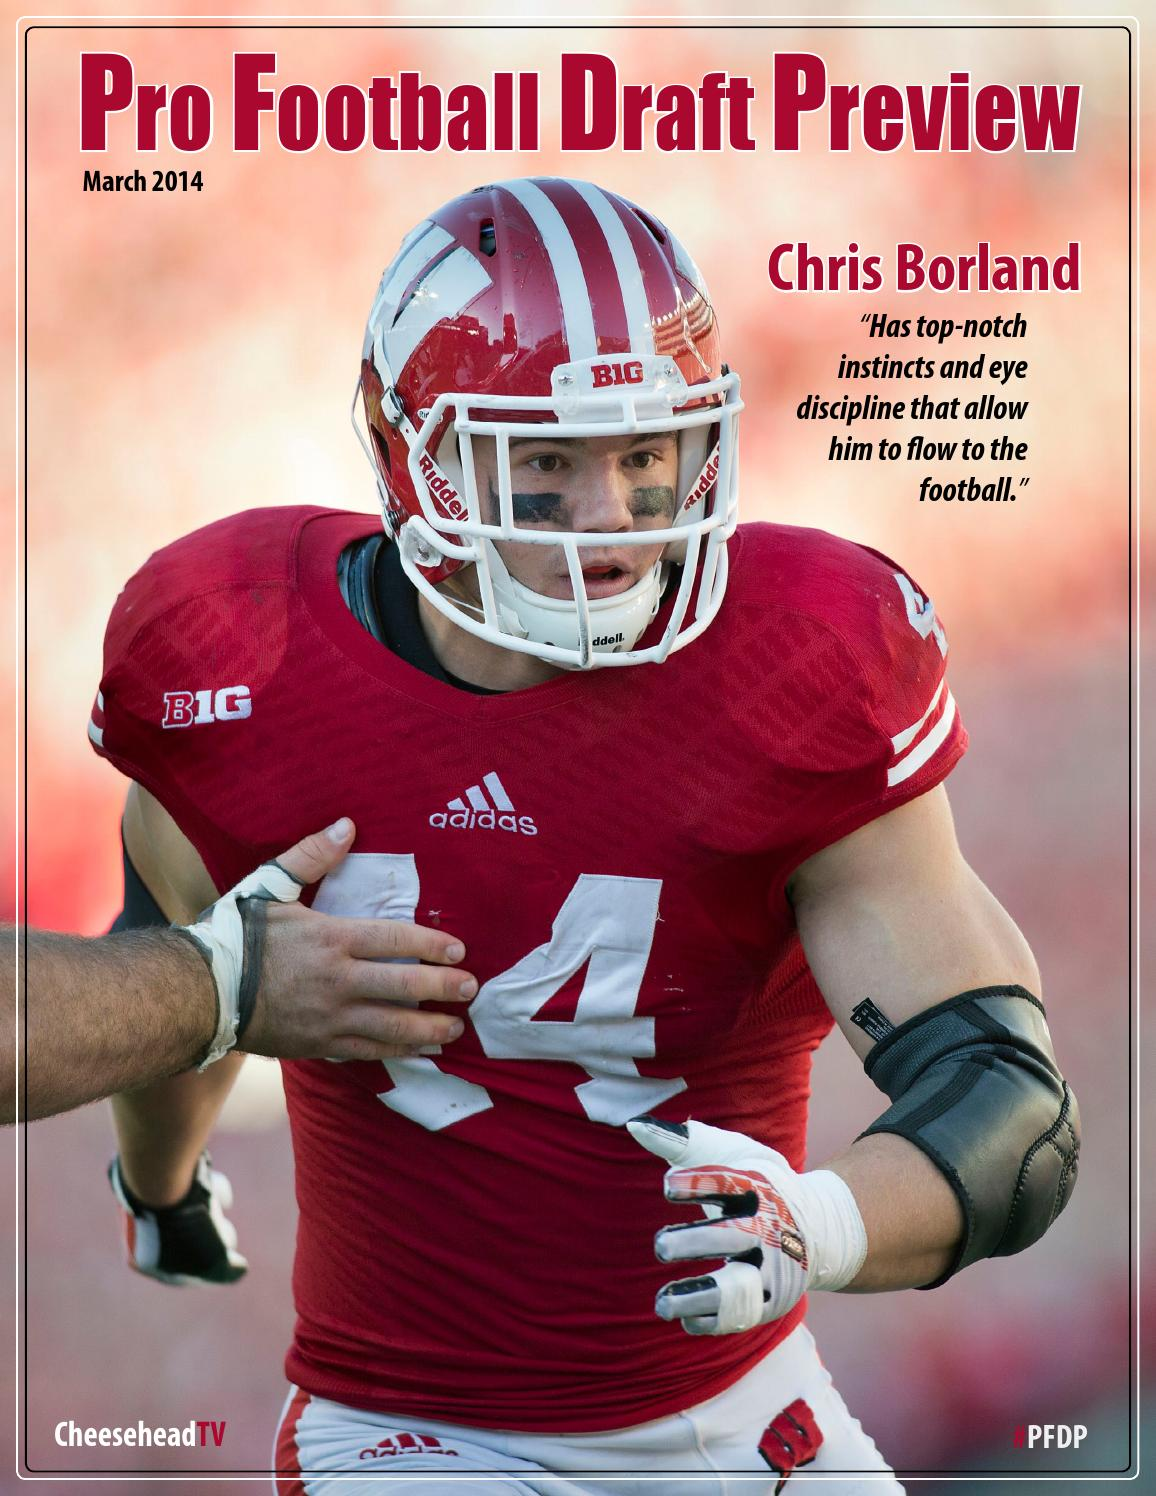 Pro Football Draft Preview, 2014 mobile edition by Brian